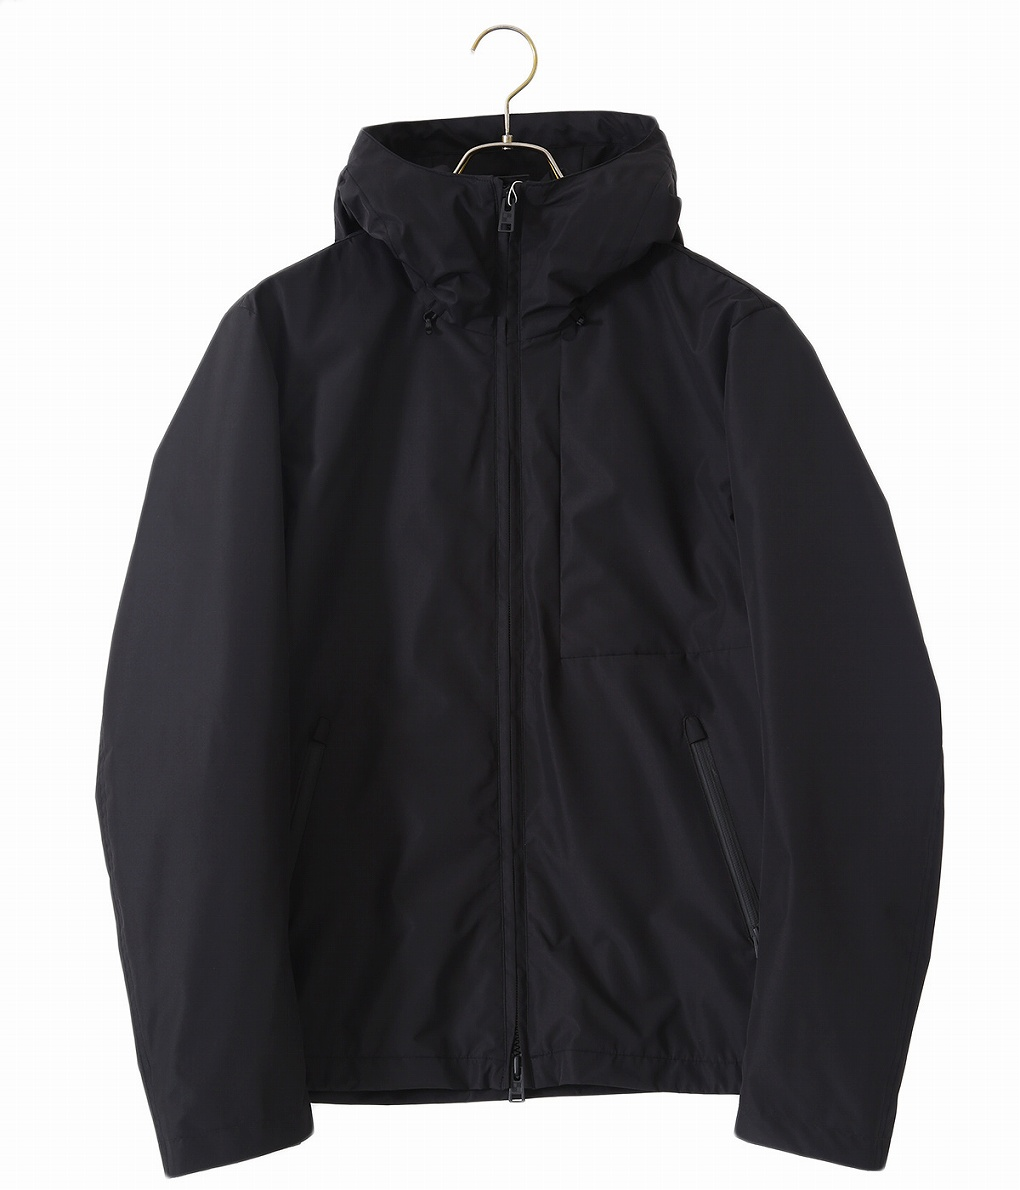 WOOLRICH / ウールリッチ : PACIFIC JACKET : ウールリッチ アウター パシフィック マウンテンパーカー メンズ : WOOU0307 【MUS】